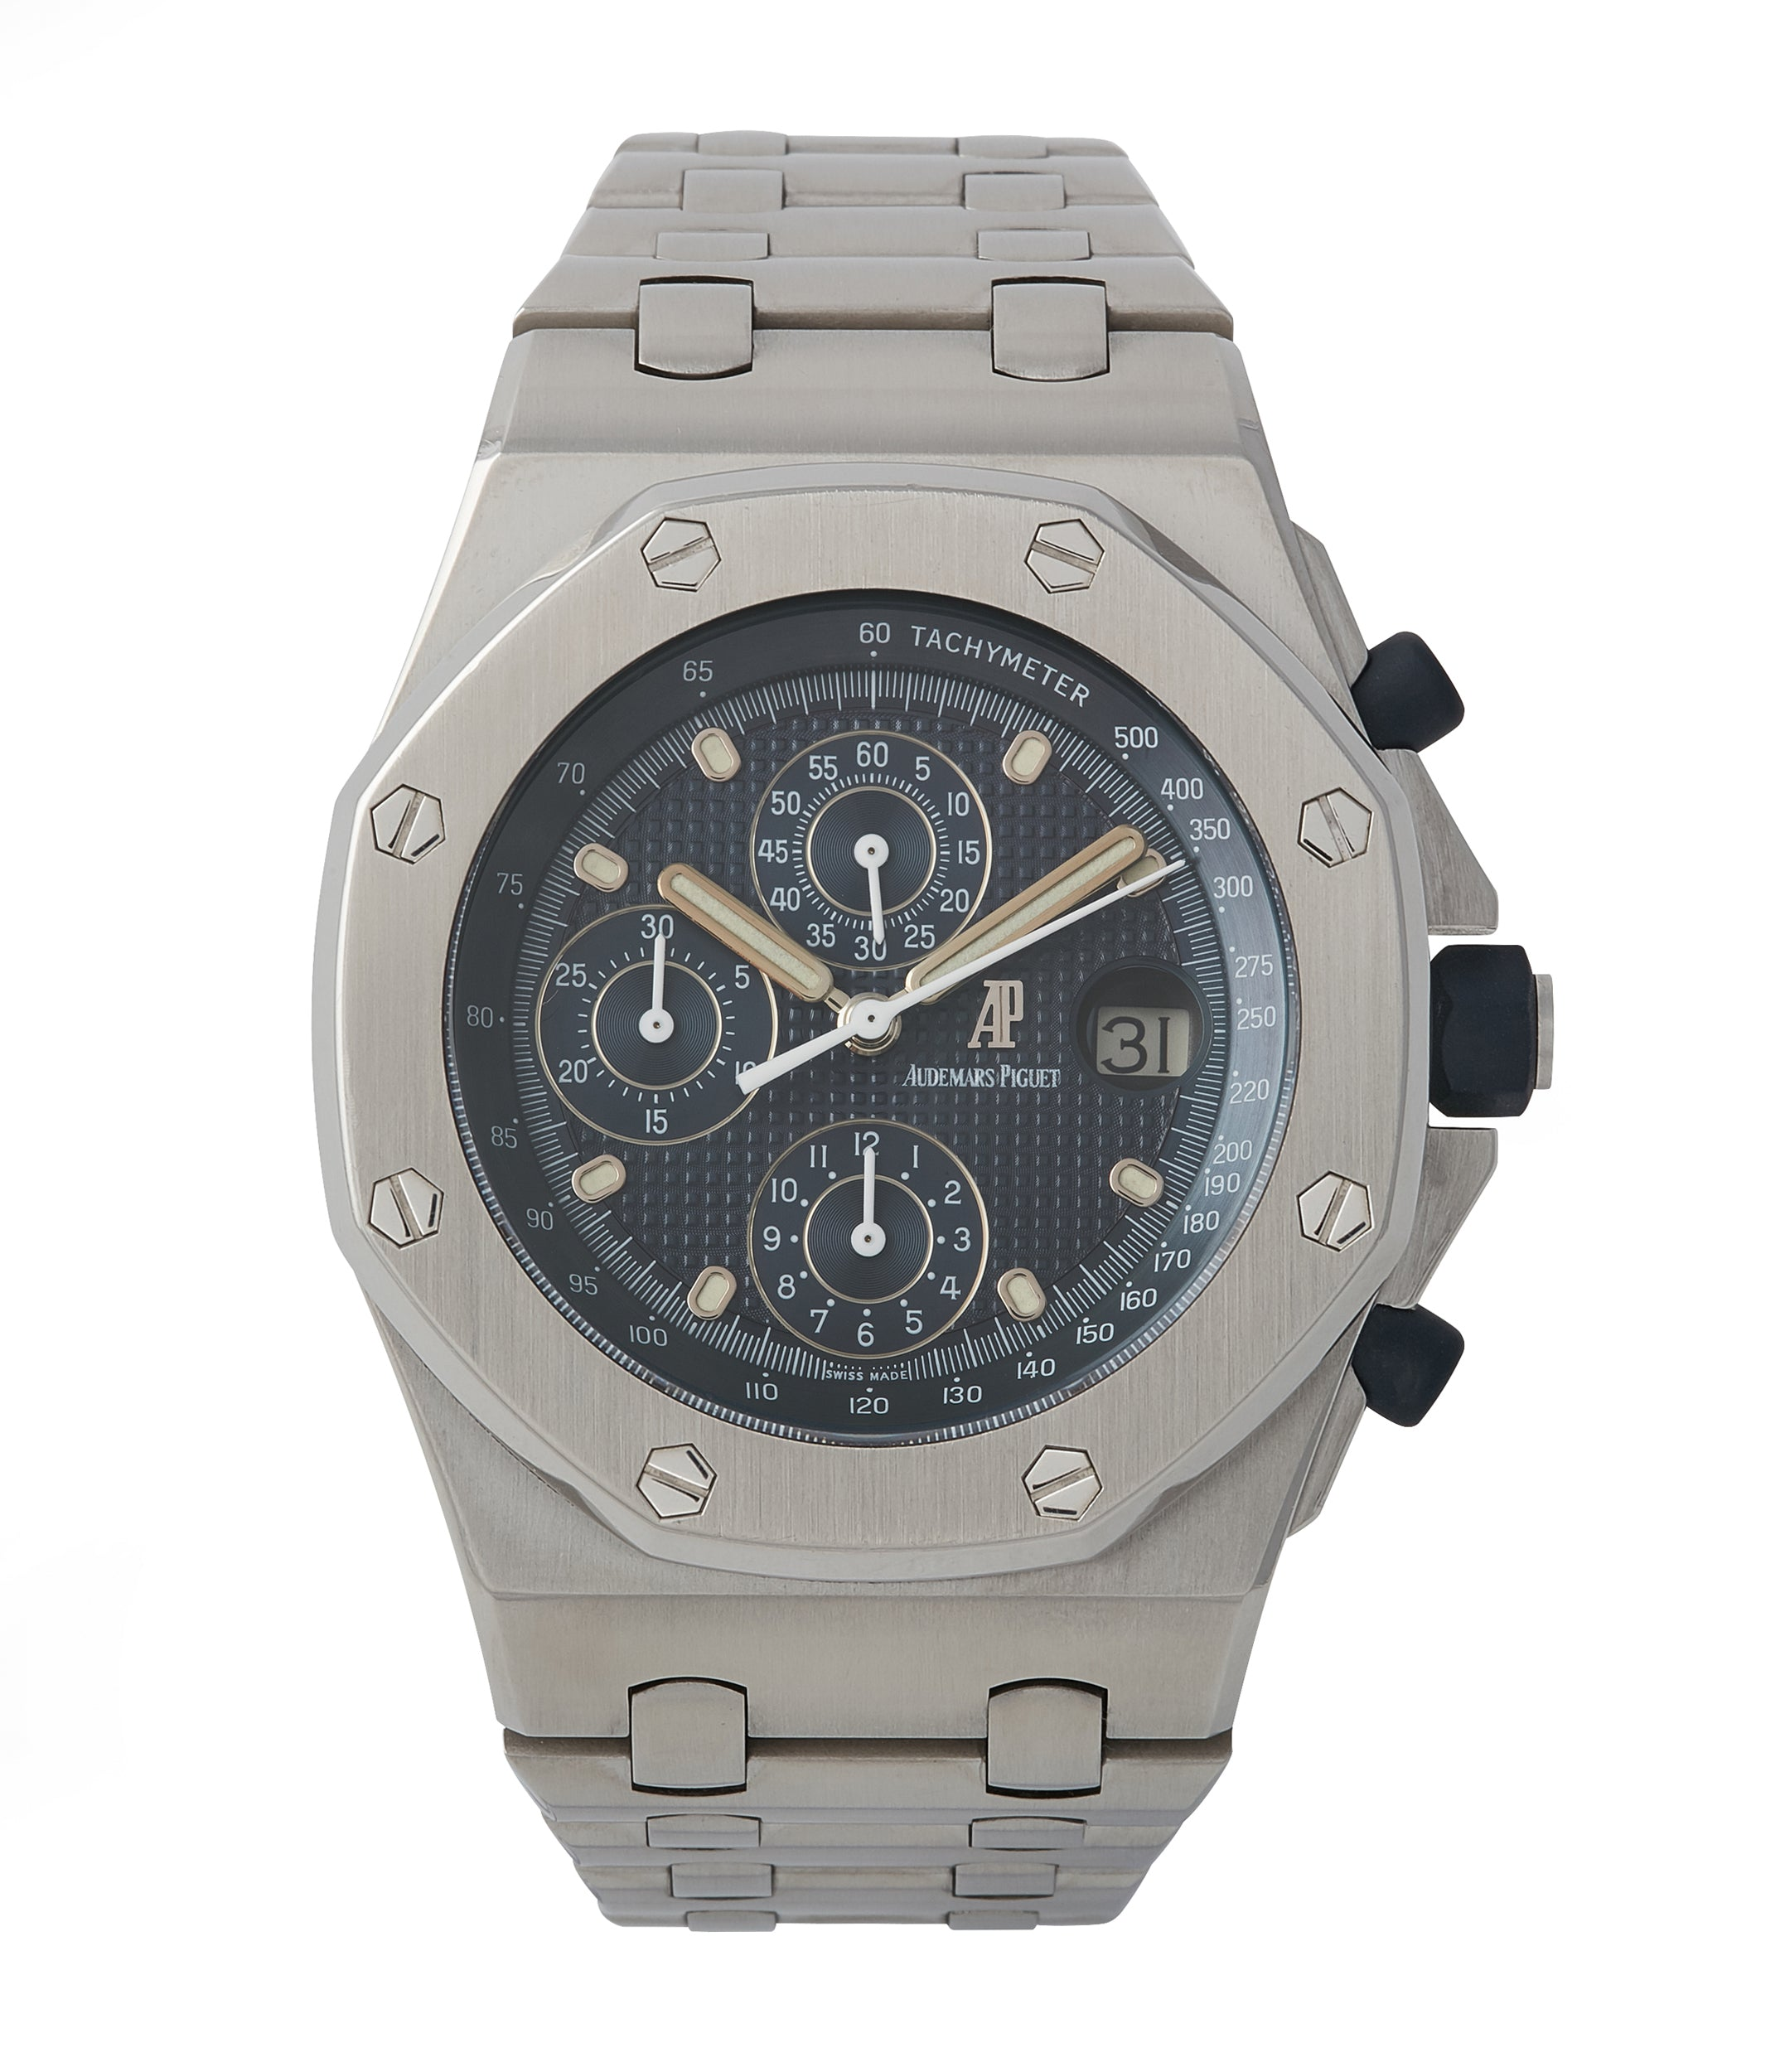 buy Audemars Piguet Royal Oak Offshore 'The Beast' 25721 steel vintage chronograph watch for sale online A Collected Man London UK specialist of rare watches